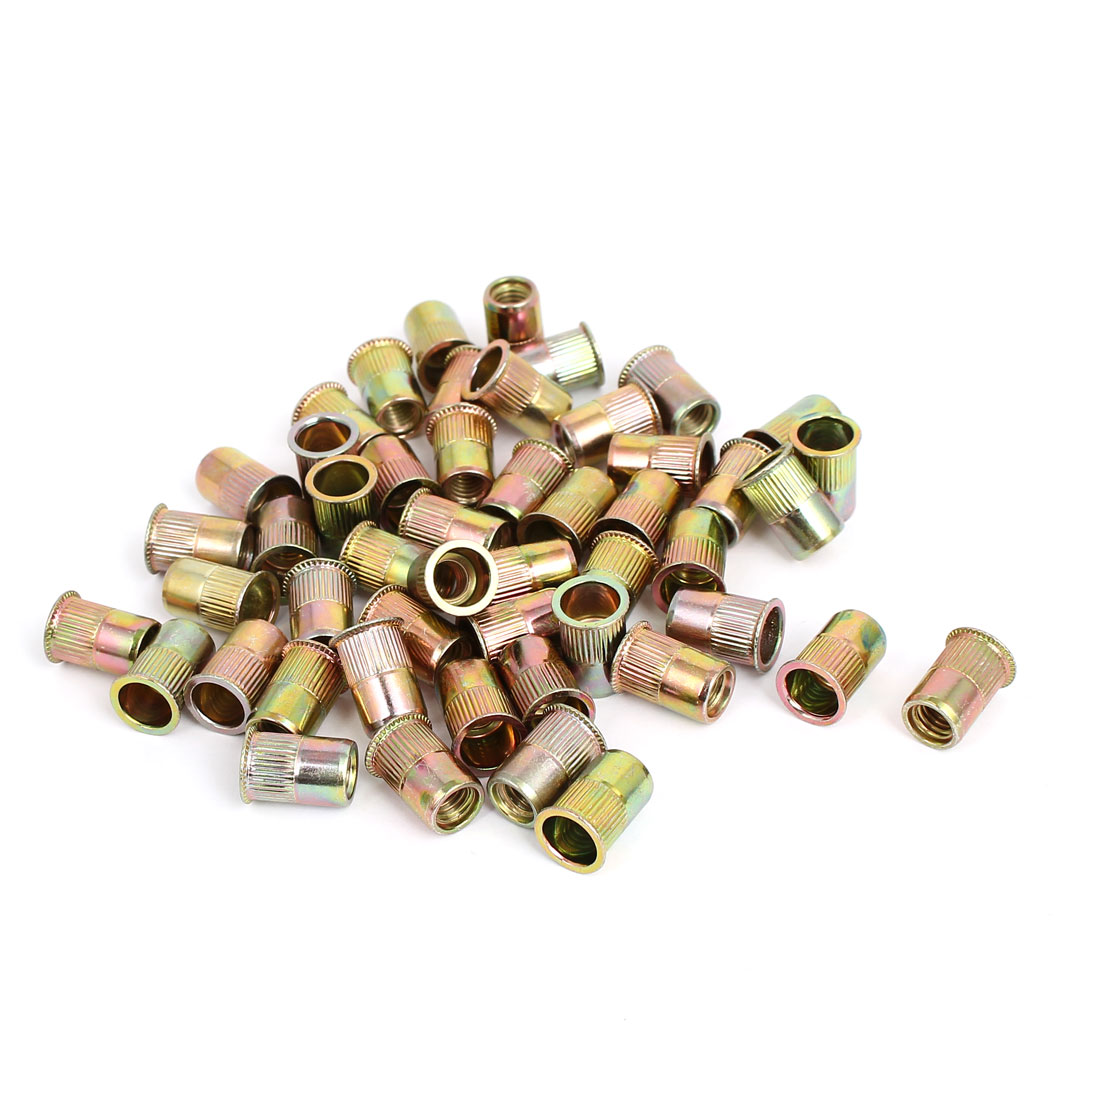 M6 Thread 14mm Long Rivet Nut Insert Nutsert 100pcs